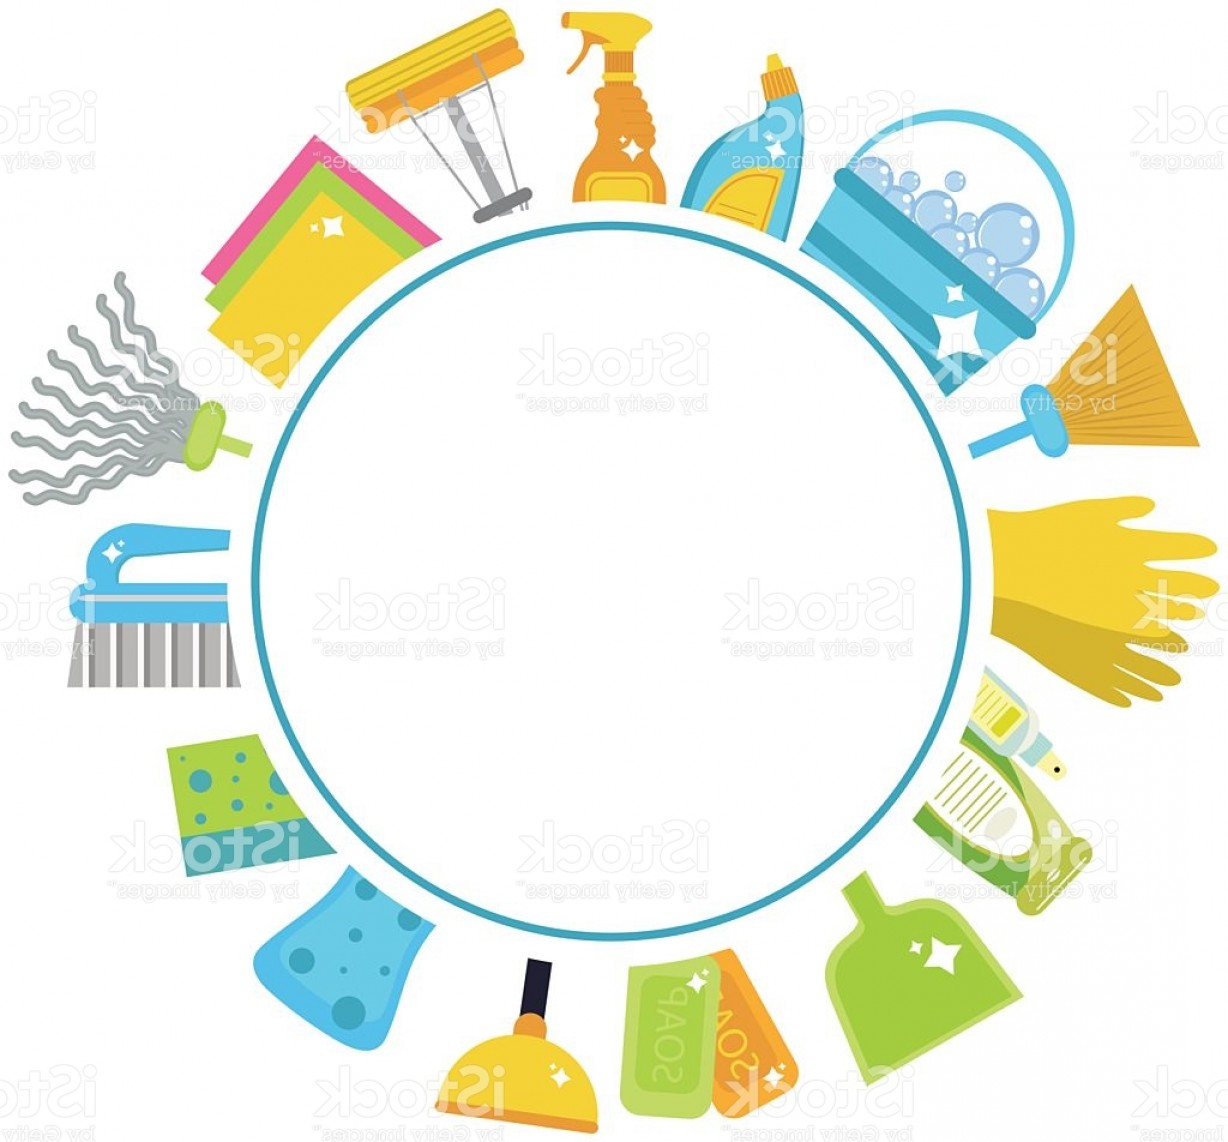 Cleaning Vector Background: Set Of Icons For Cleaning Tools House Cleaning Cleaning Supplies Gm